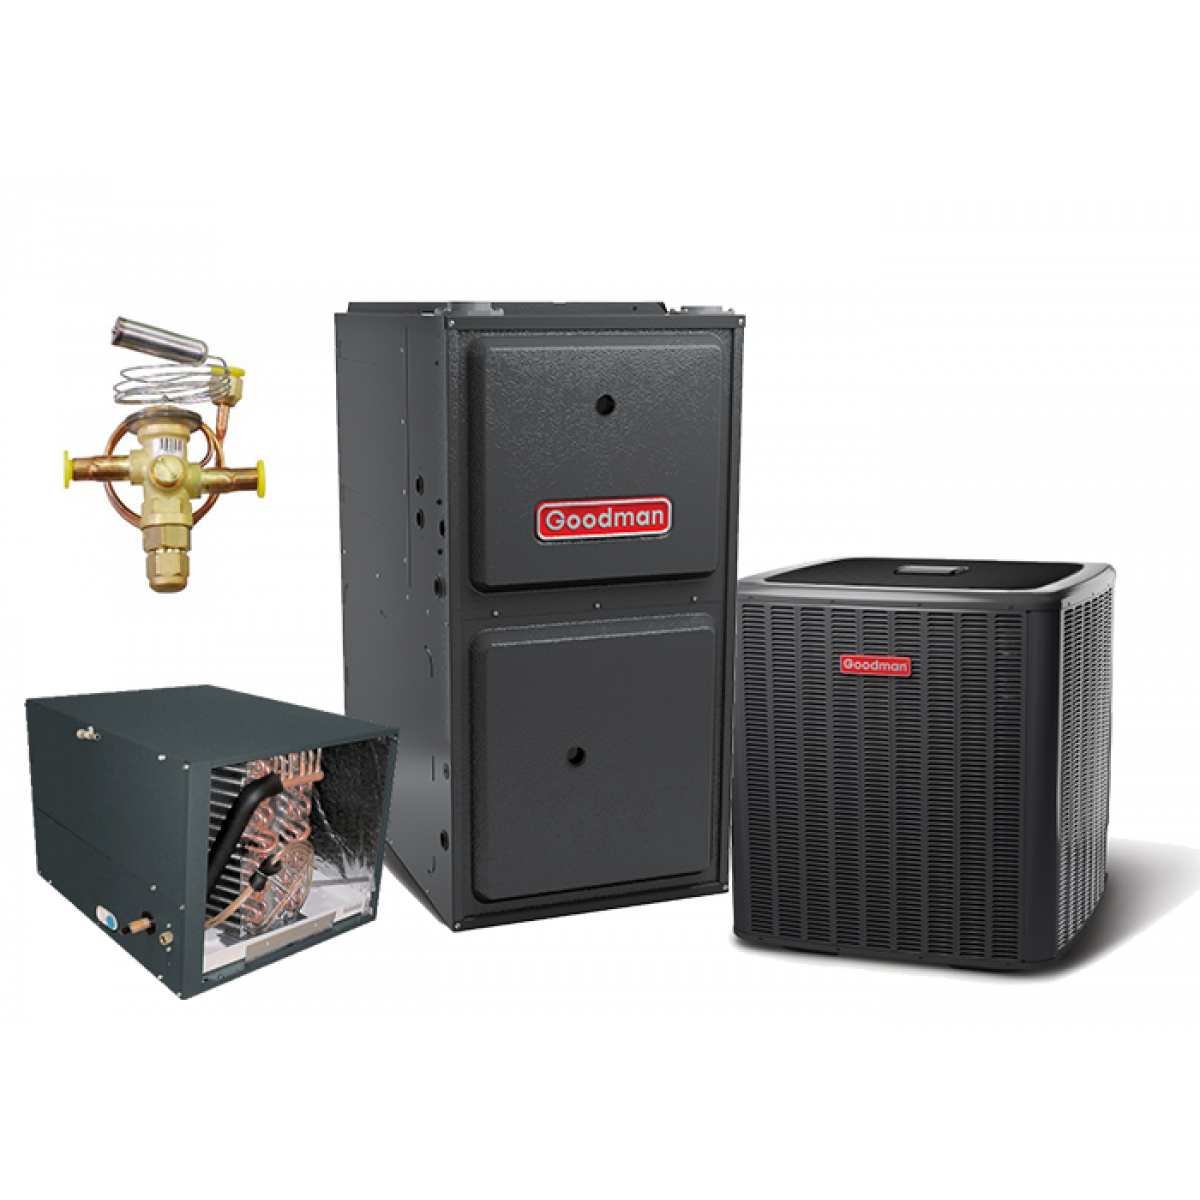 #A92226 Goodman 15 SEER 3.5T 96% 80K BTU Two Stage Variable Speed  Top of The Line 13234 Natural Gas Air Conditioning Systems picture with 1200x1200 px on helpvideos.info - Air Conditioners, Air Coolers and more